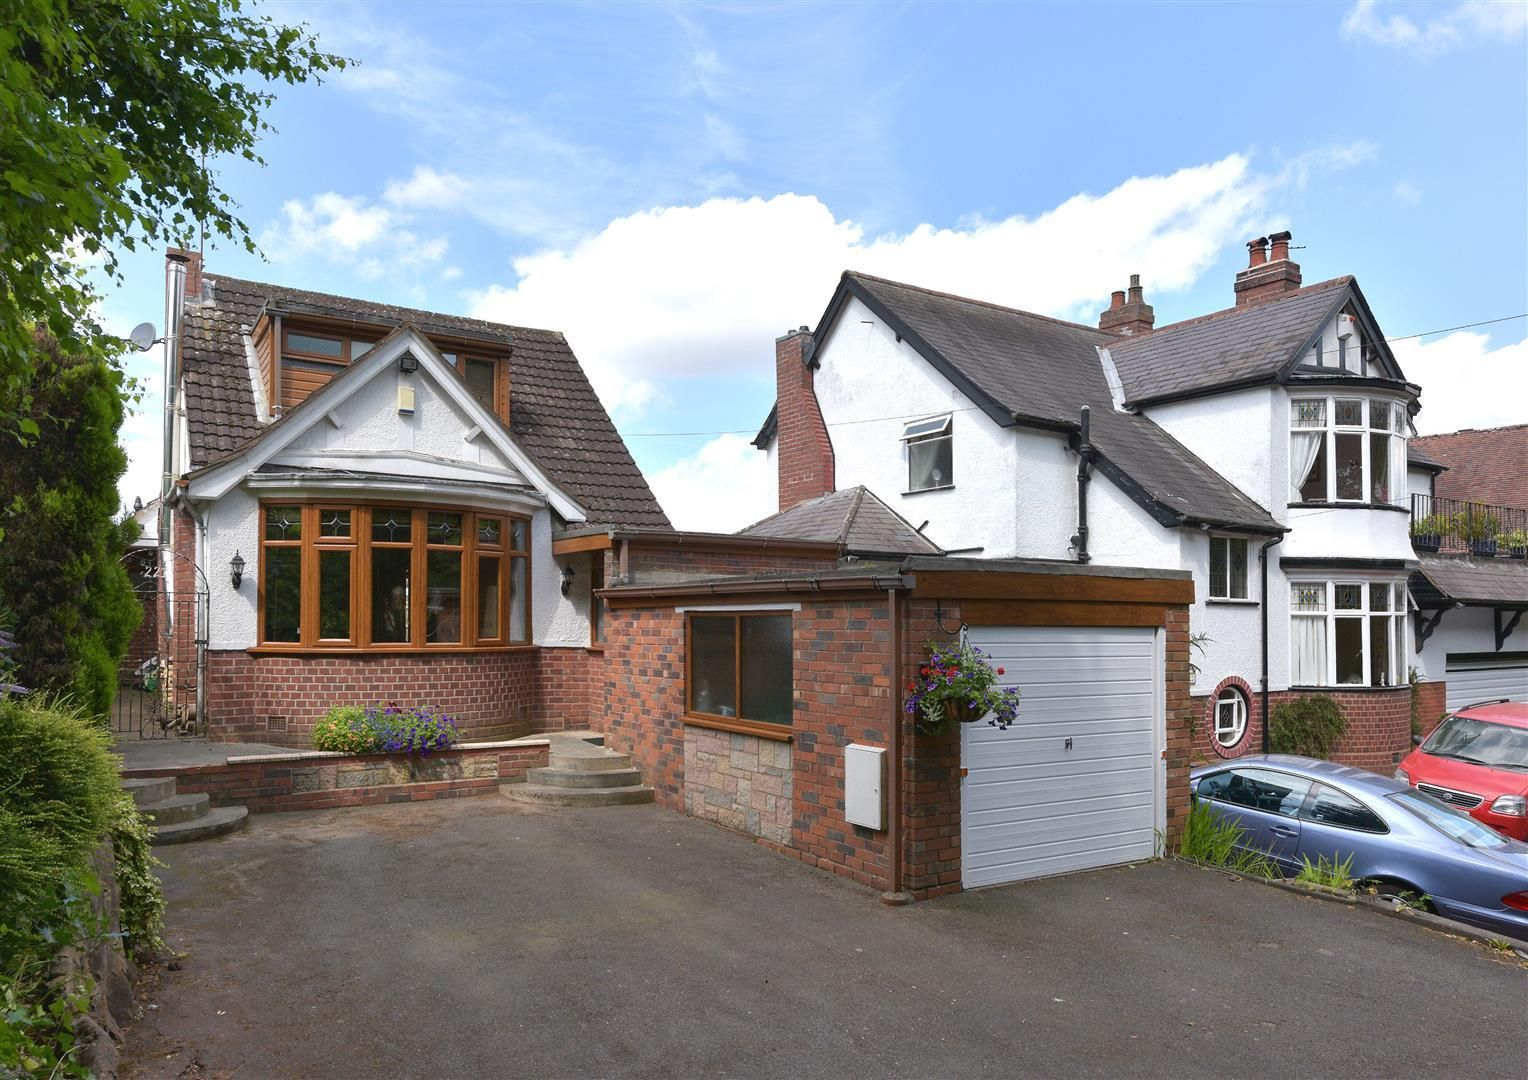 2 bed detached for sale in Hunnington, B62